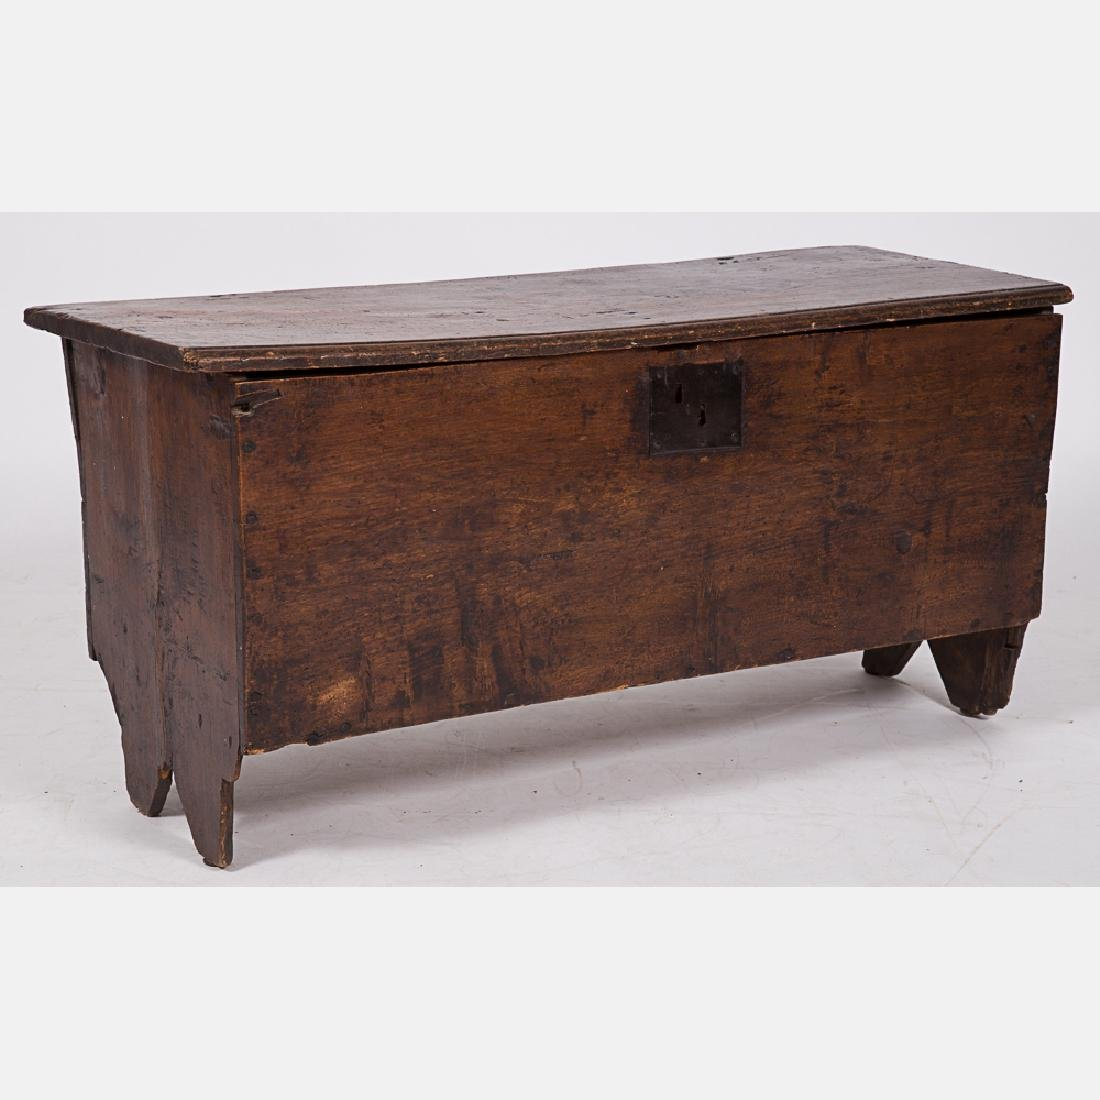 An American Oak Blanket Chest, 20th Century.